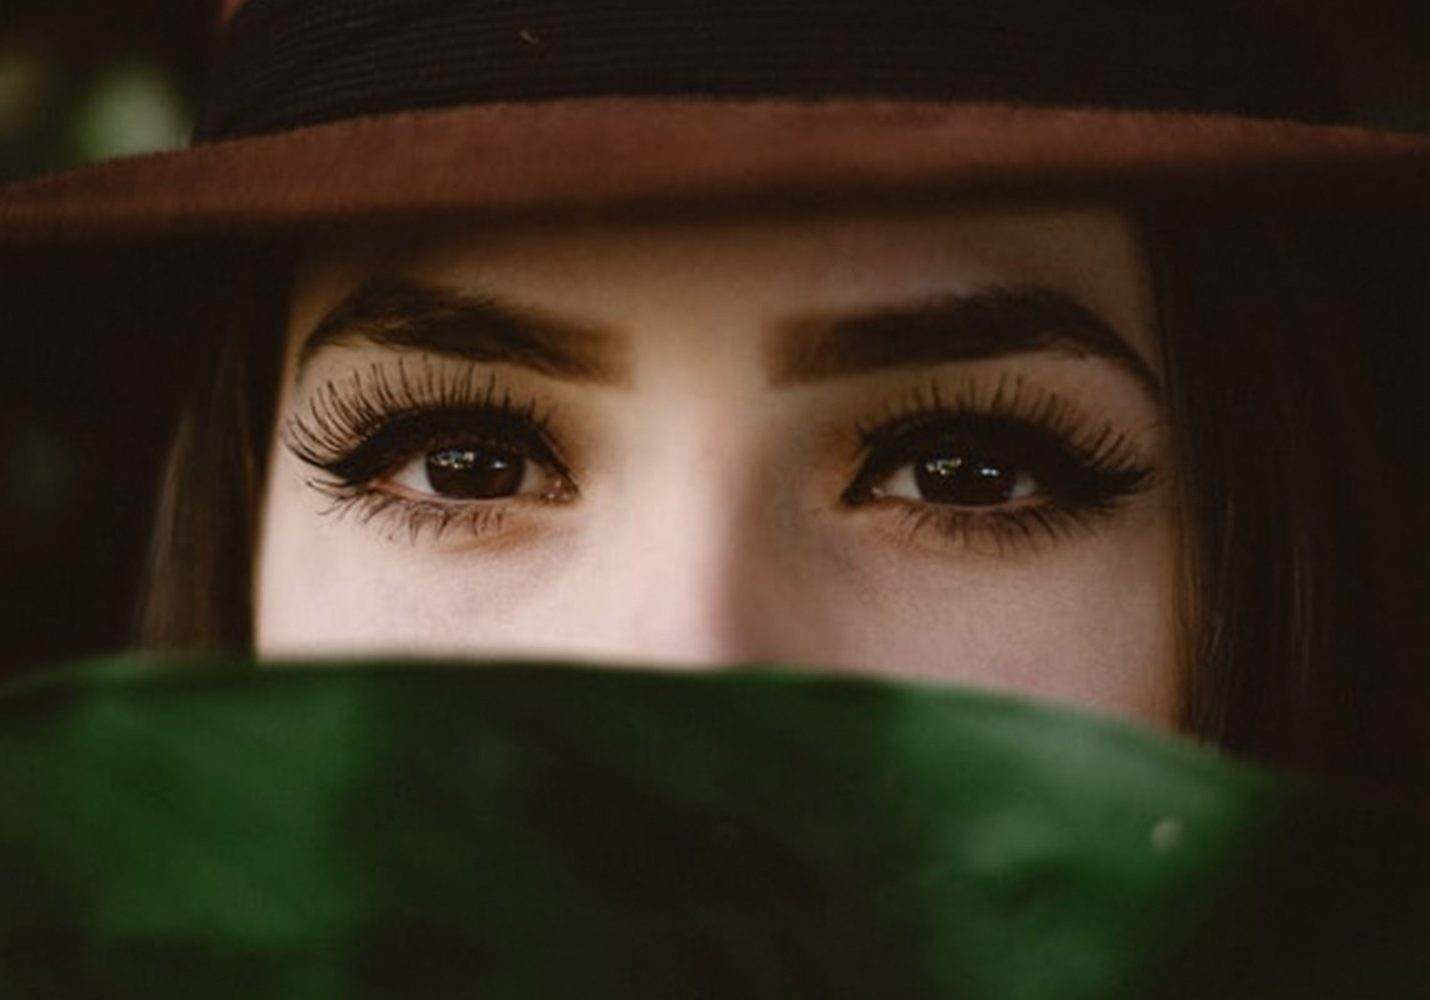 closeup of a woman's eyes with long lashes